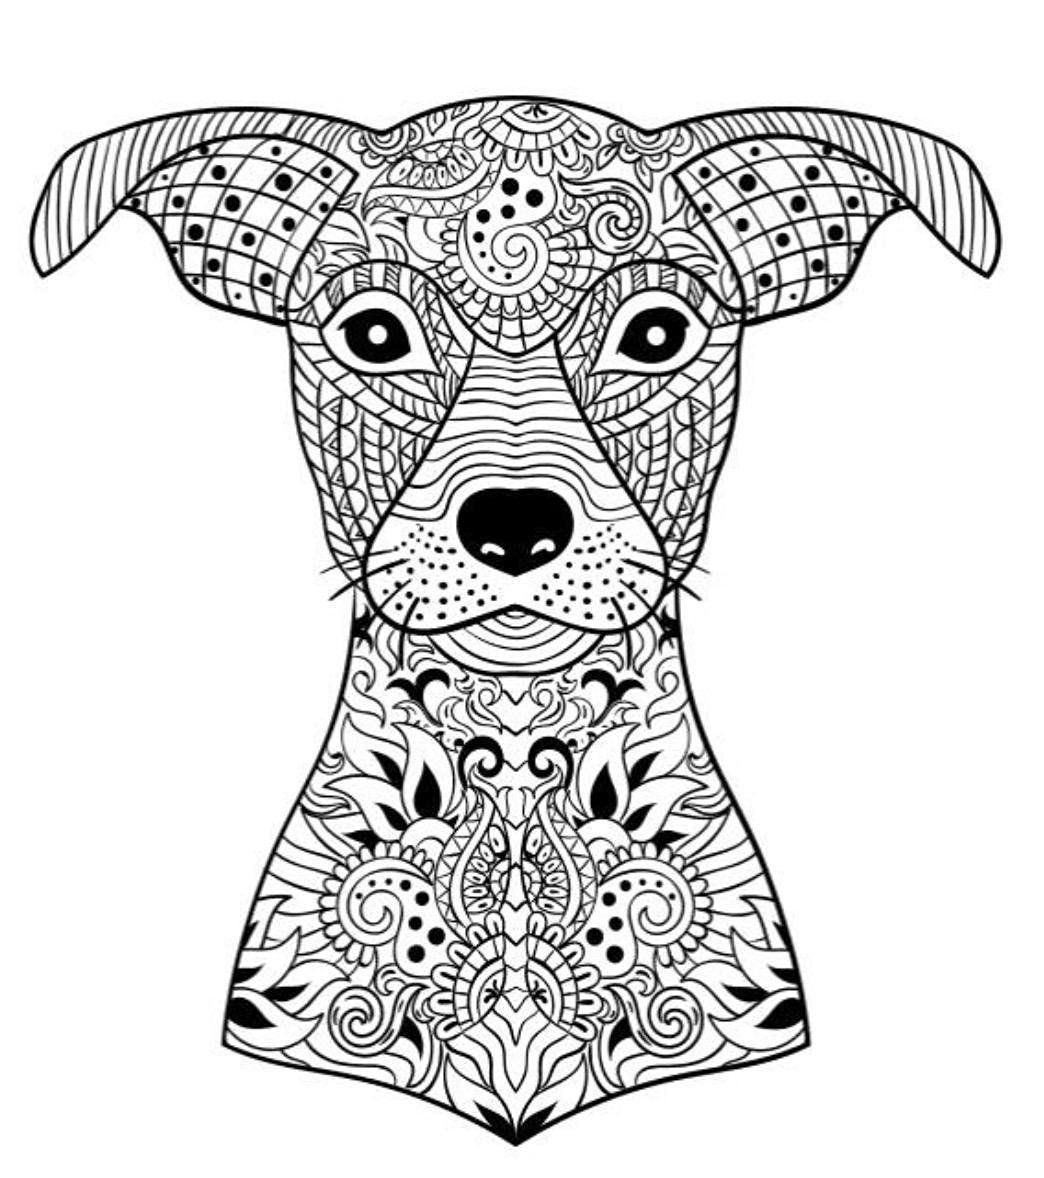 Dog Lover: Adult Colouring Book: Best Colouring Gifts for